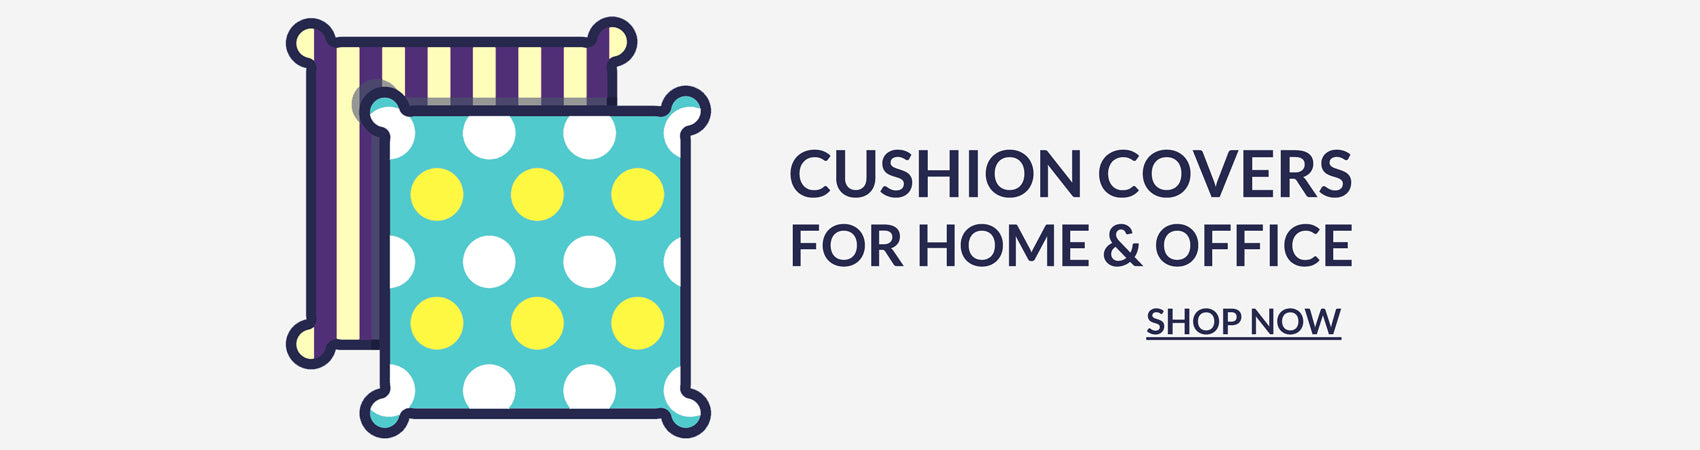 Buy Cushion Covers For Home Online In India | PosterGuy